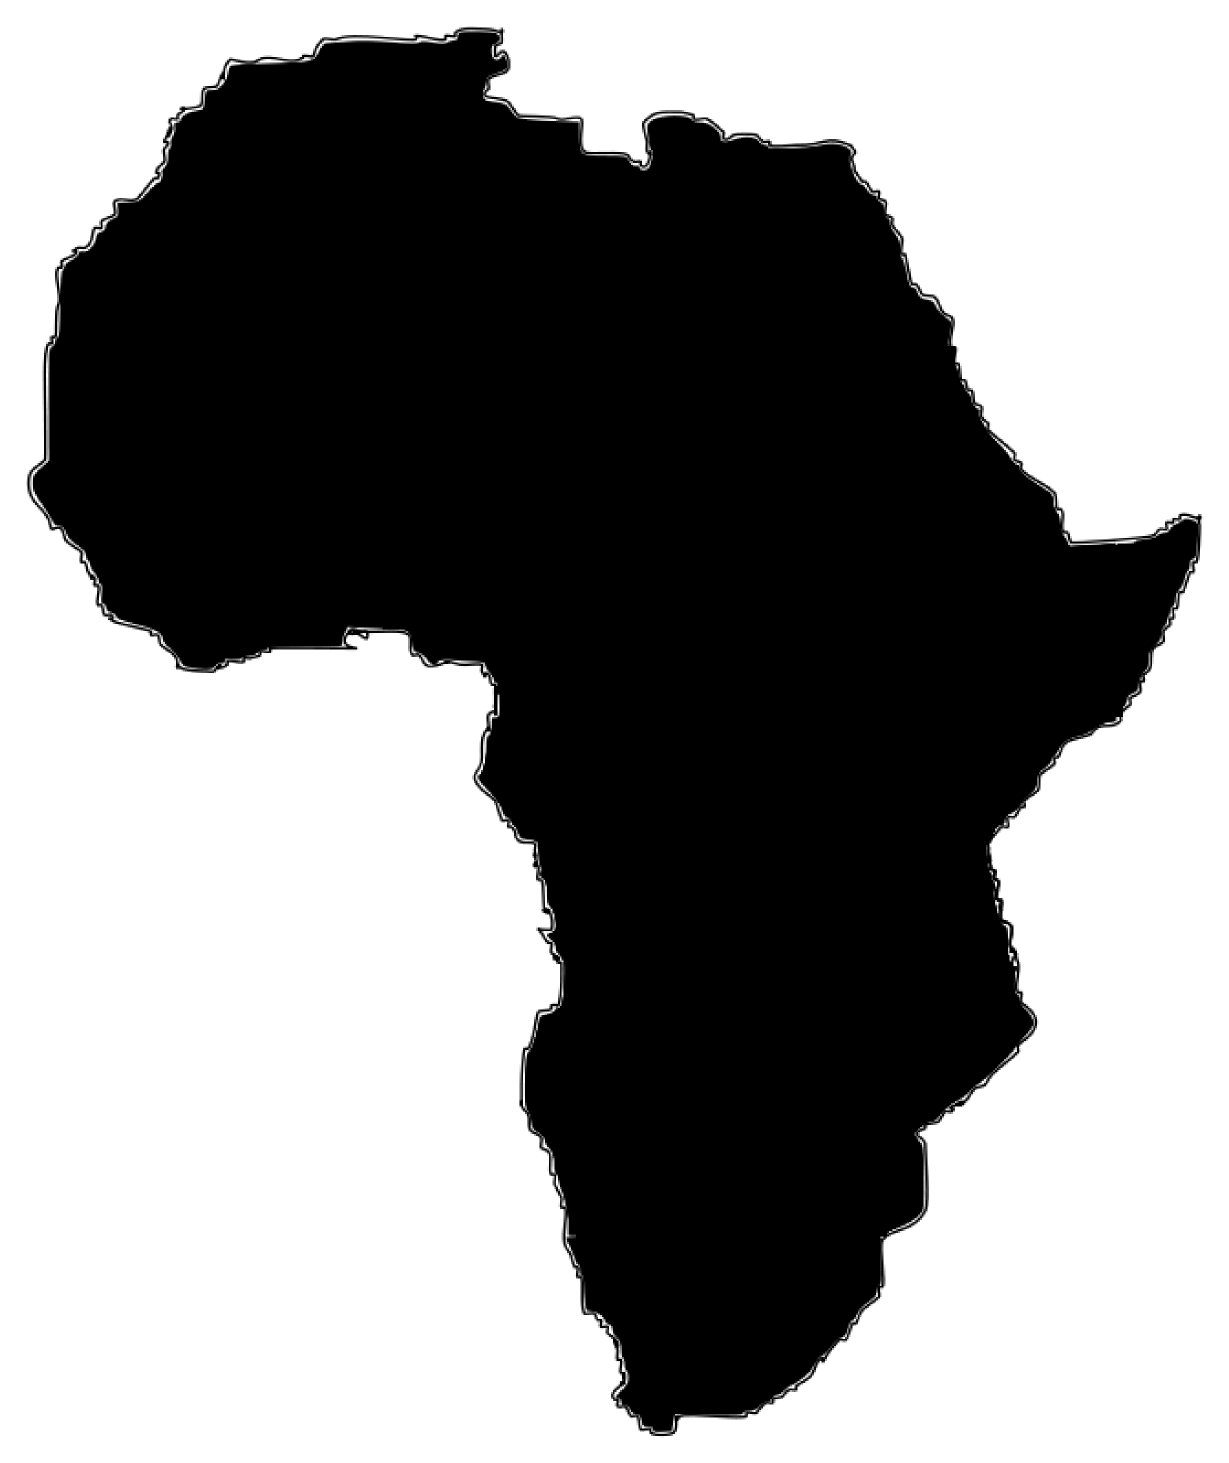 Africa logo clipart jpg black and white library Africa Clipart Group with 67+ items jpg black and white library